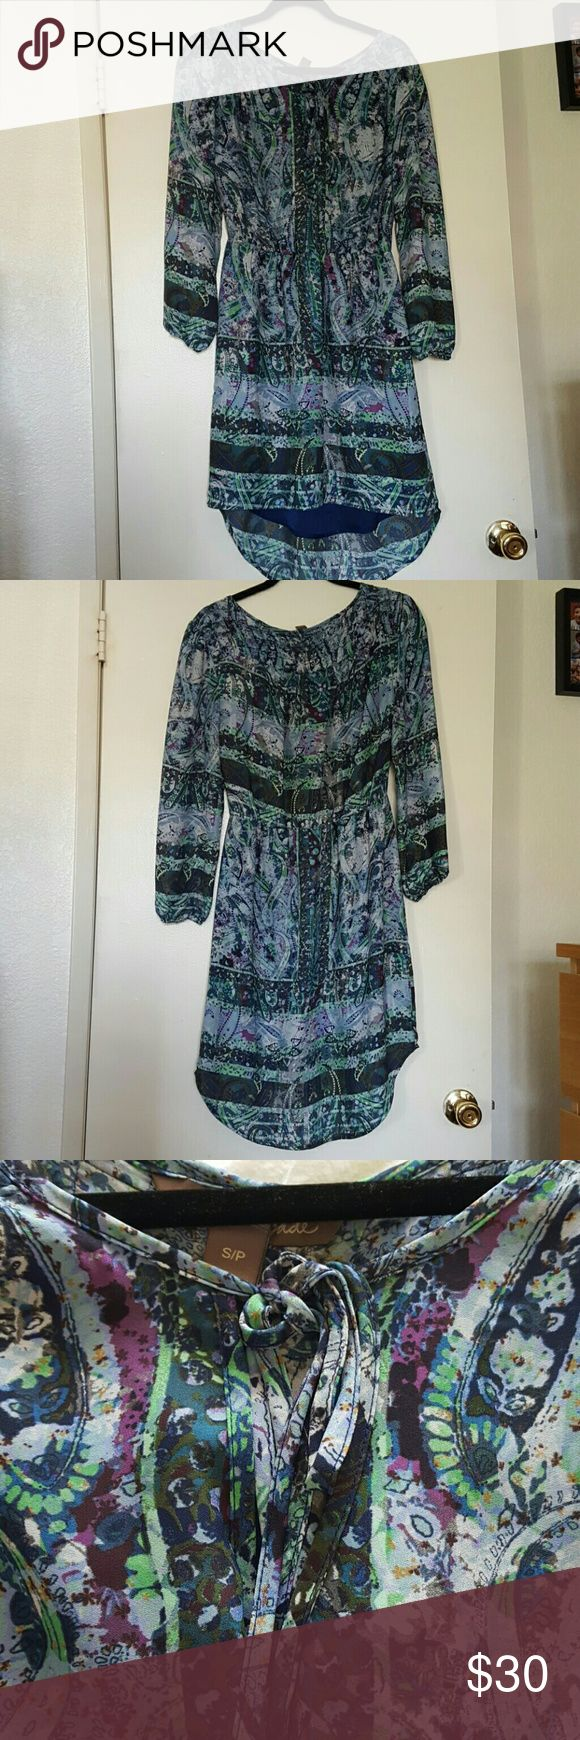 Charlie Jade blue and green dress size Small Excellent condition like new. Charlie Jade dress. Charlie Jade Dresses Mini